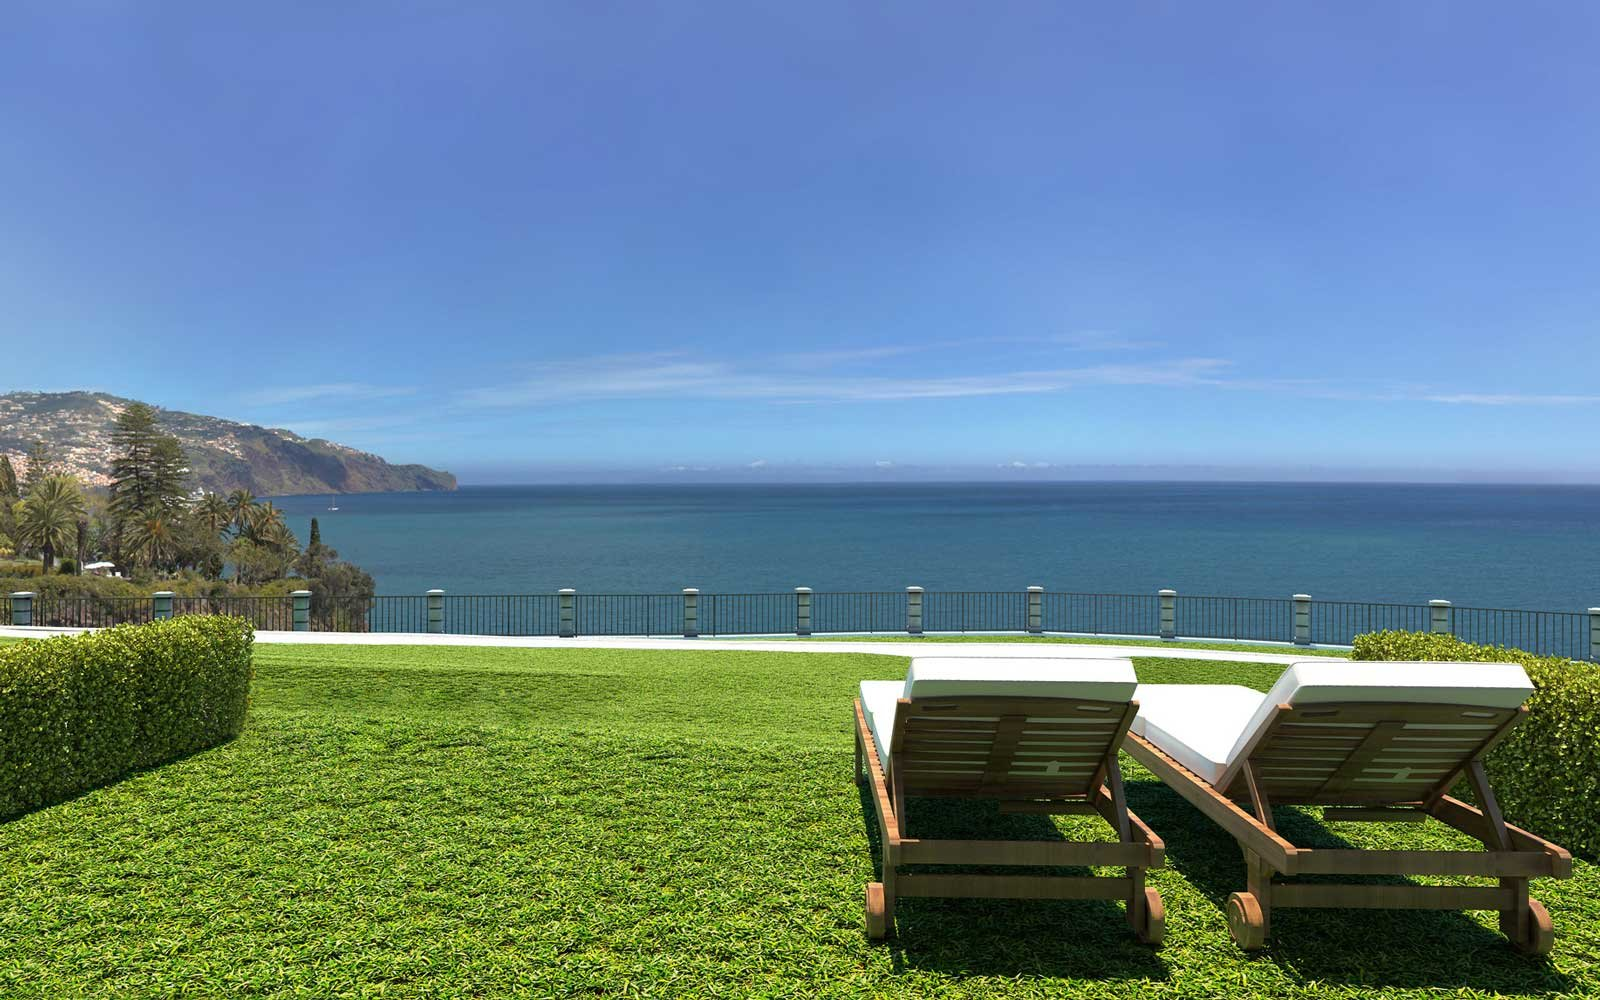 Les Suites at Cliff Bay in Madeira, Portugal